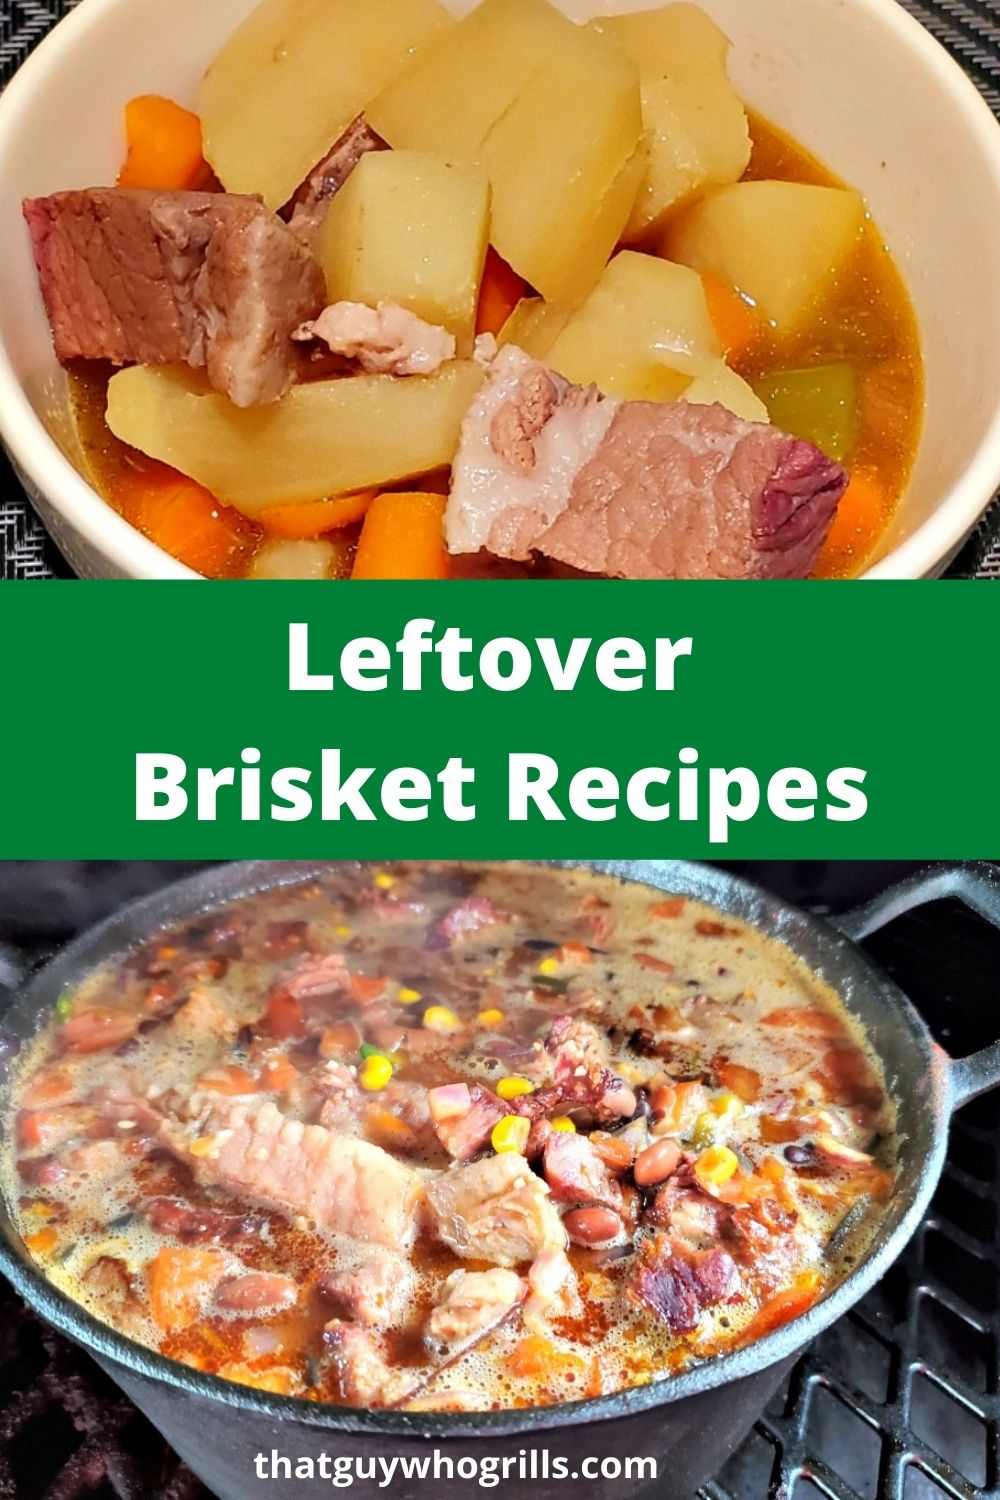 These Leftover Brisket Recipes are perfect to use up leftover Beef Smoked Beef Brisket. Use the brisket in chili, pies, stew, and even breakfast to make tasty meals! You can use the smoker to add even more or a crockpot.